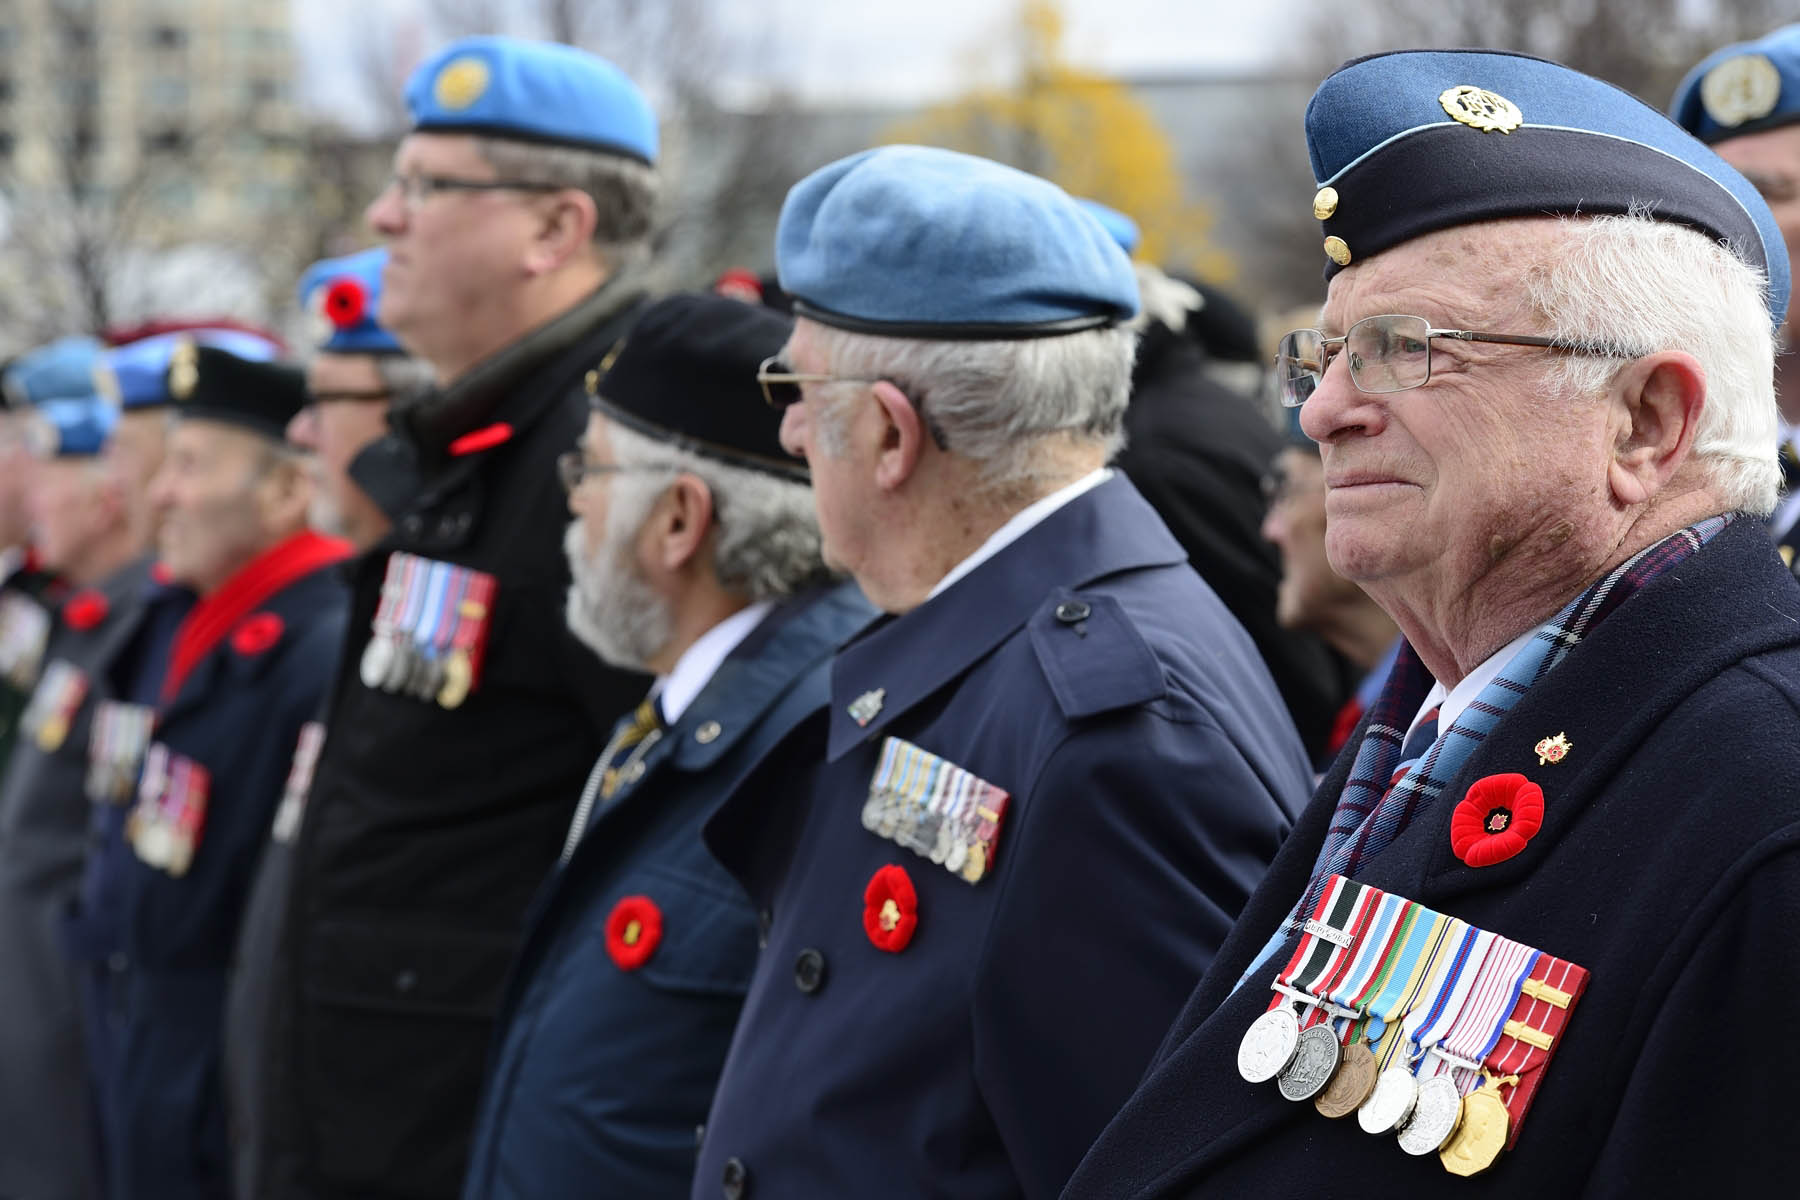 On this day of mourning, veterans stood up proudly at the foot of the National War Memorial.